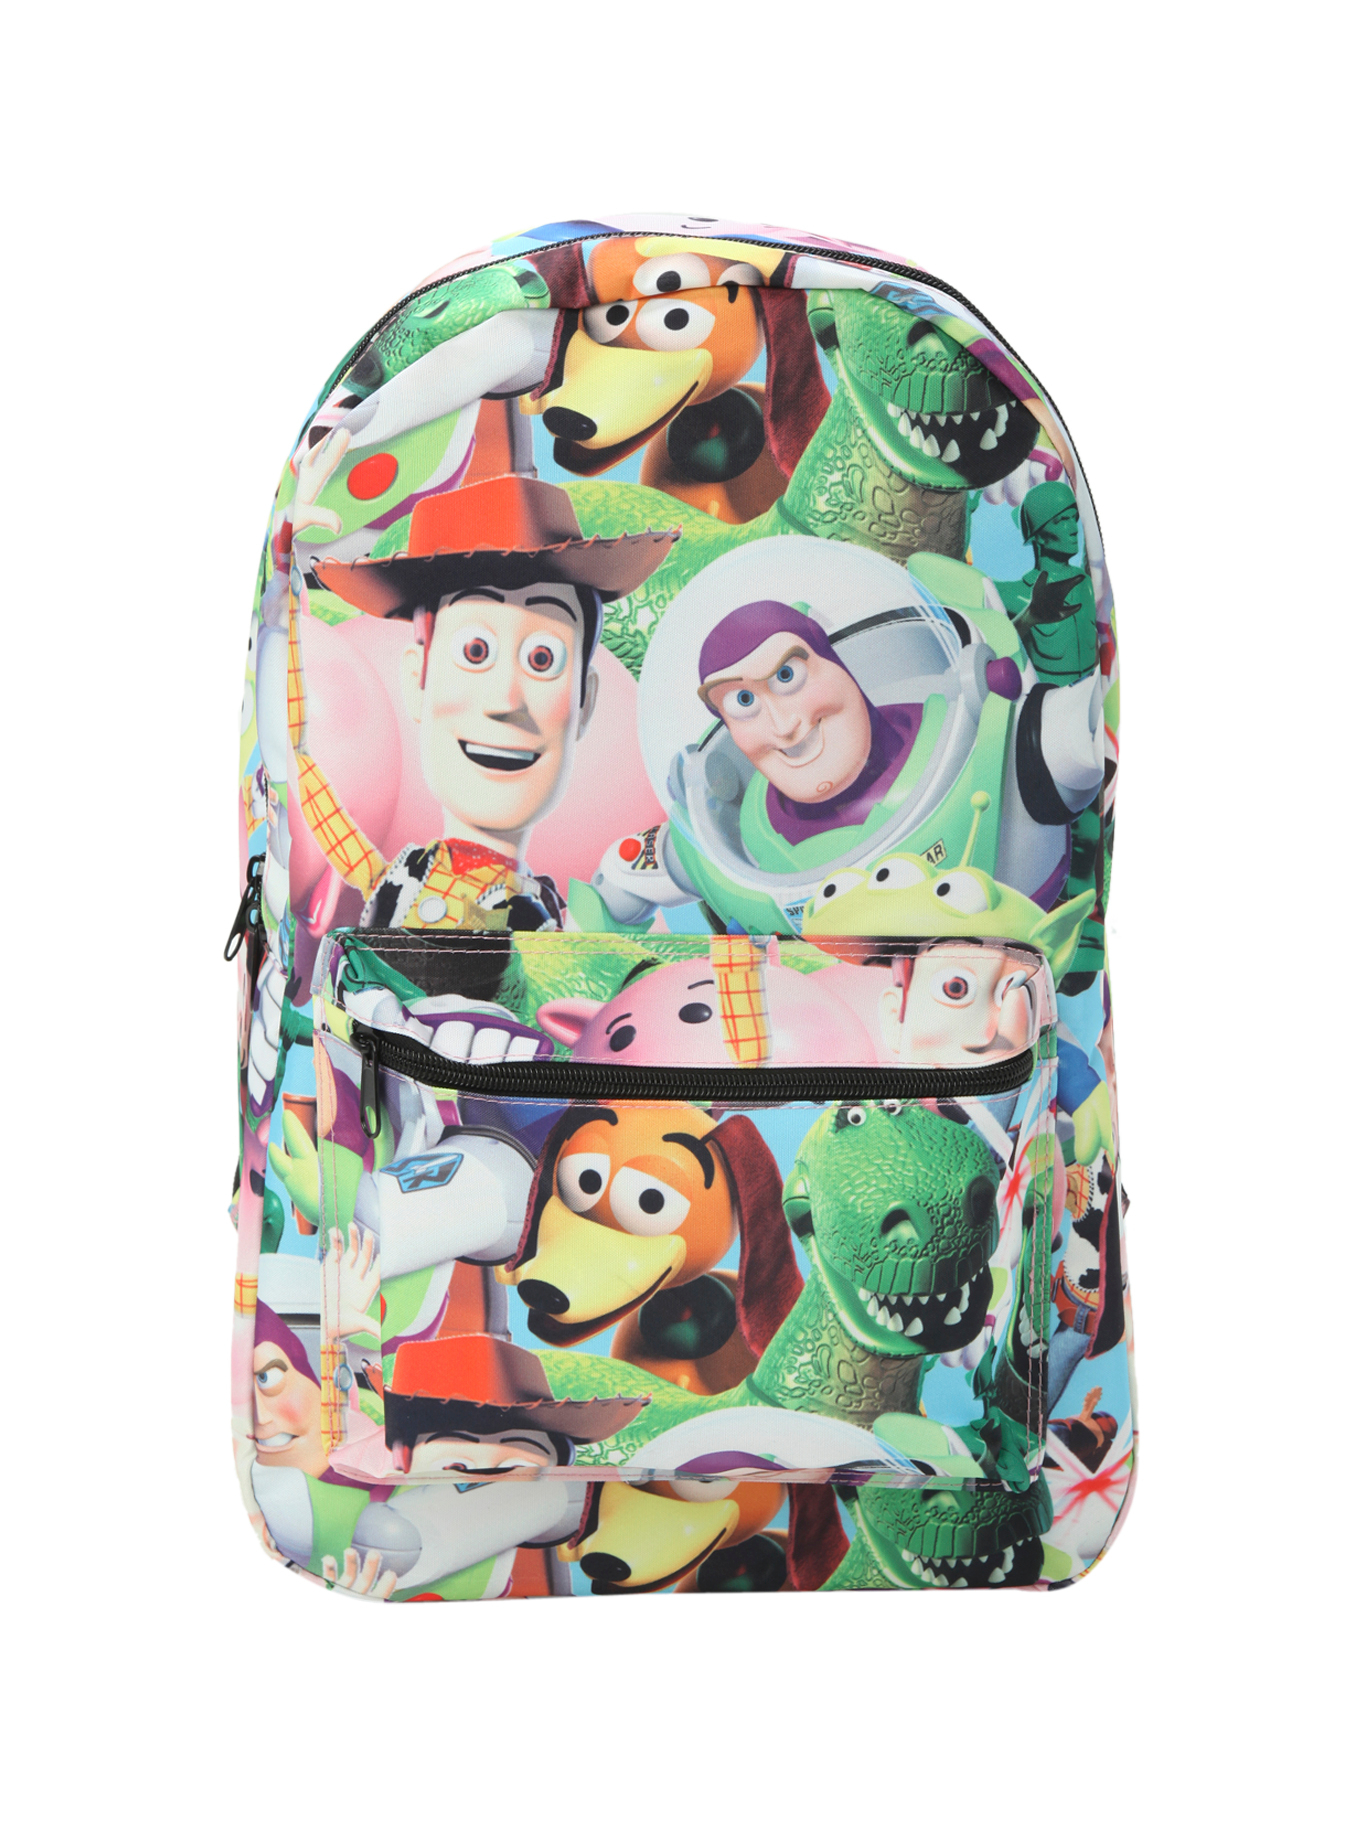 Toys From Hot Topic : Toy story clothing and accessories for women from hot